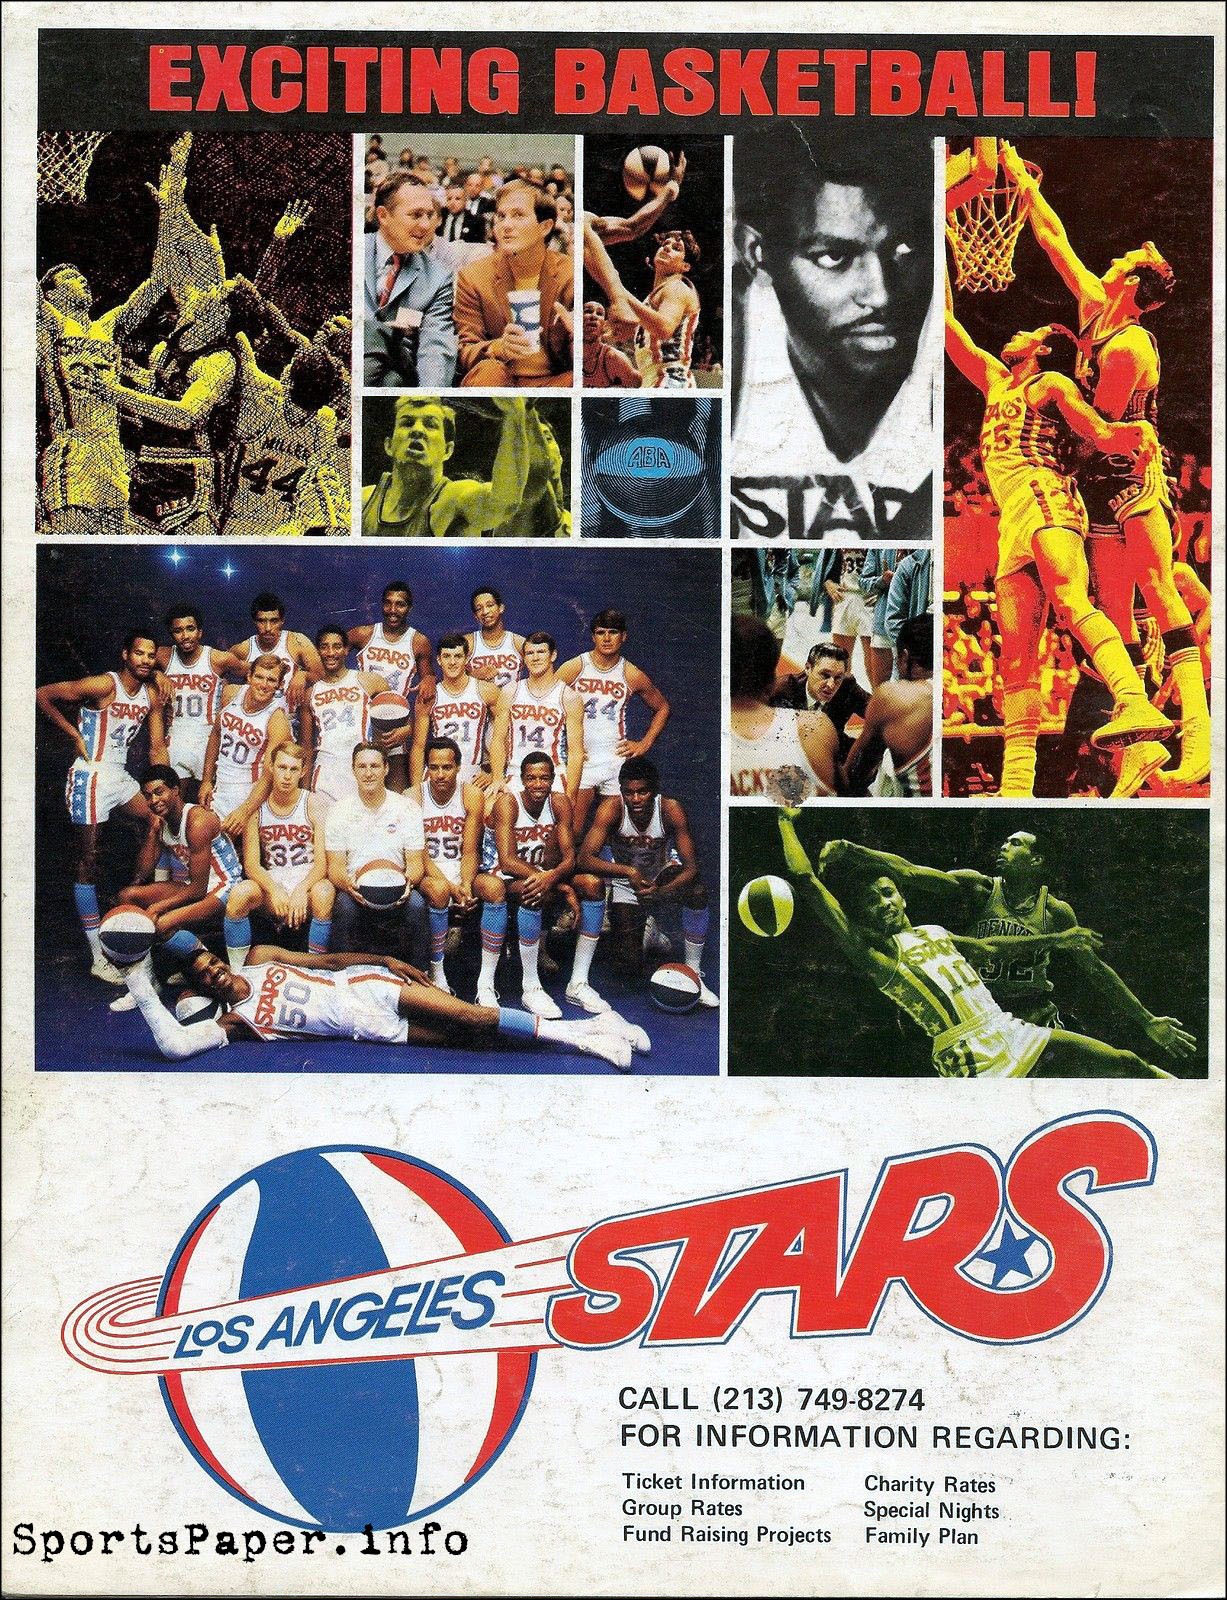 1969-70 Los Angeles Stars (ABA) advertisement